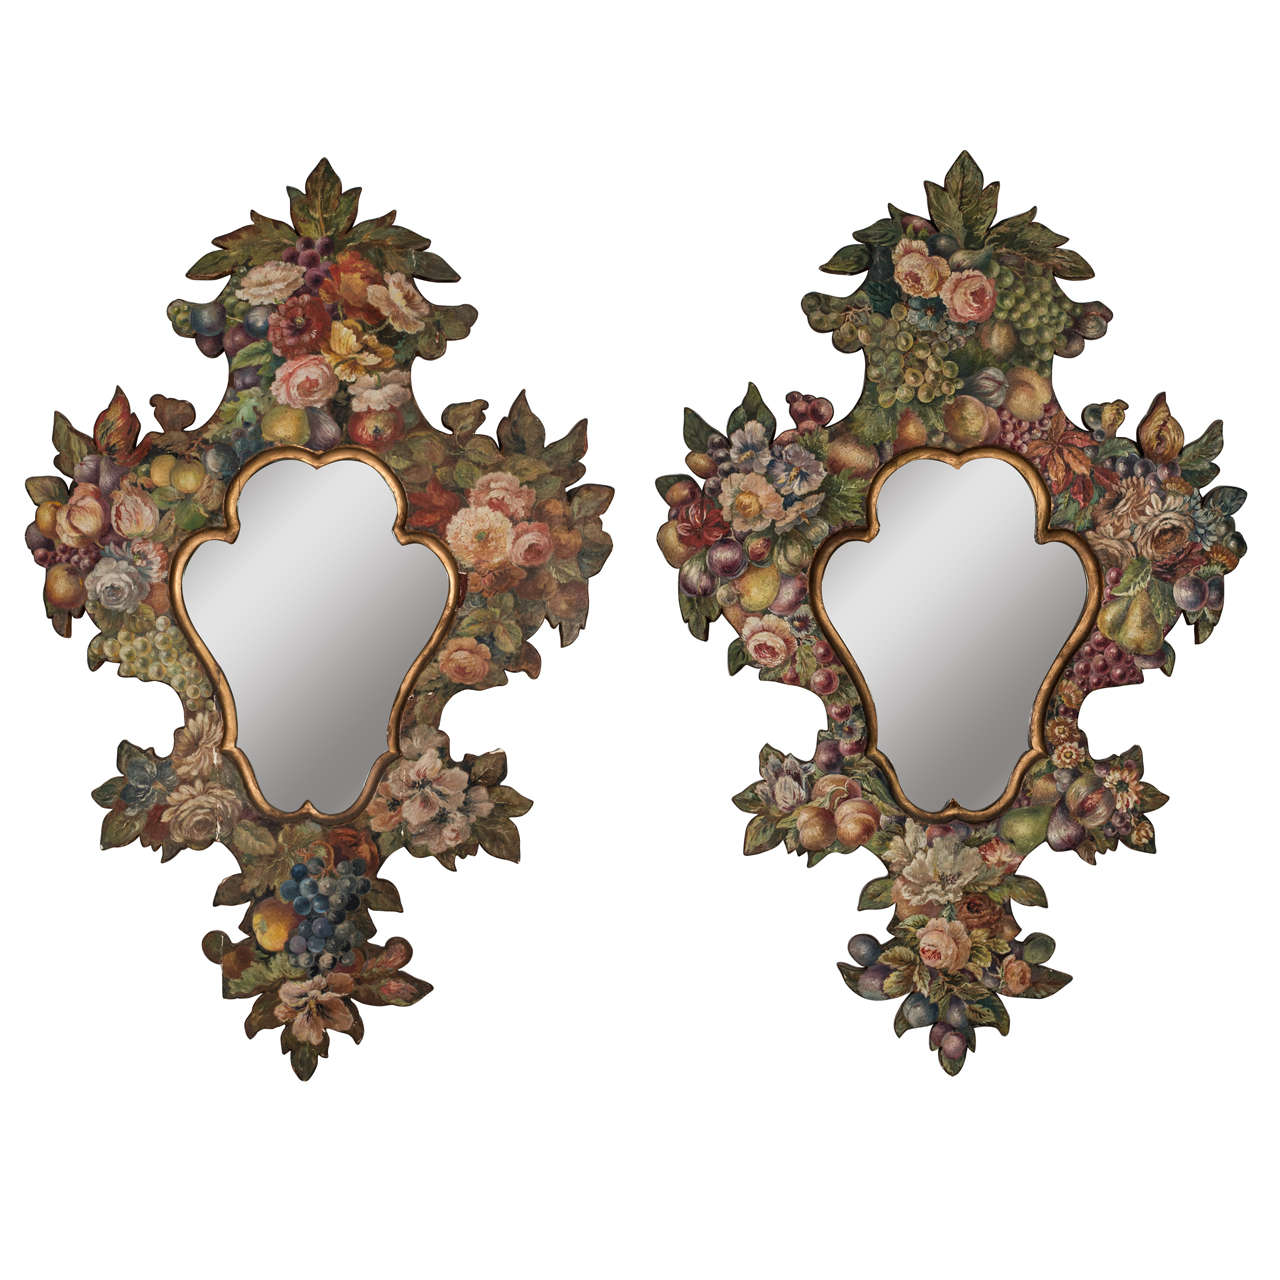 Pair of 19th Century Hand-Painted Mirrors